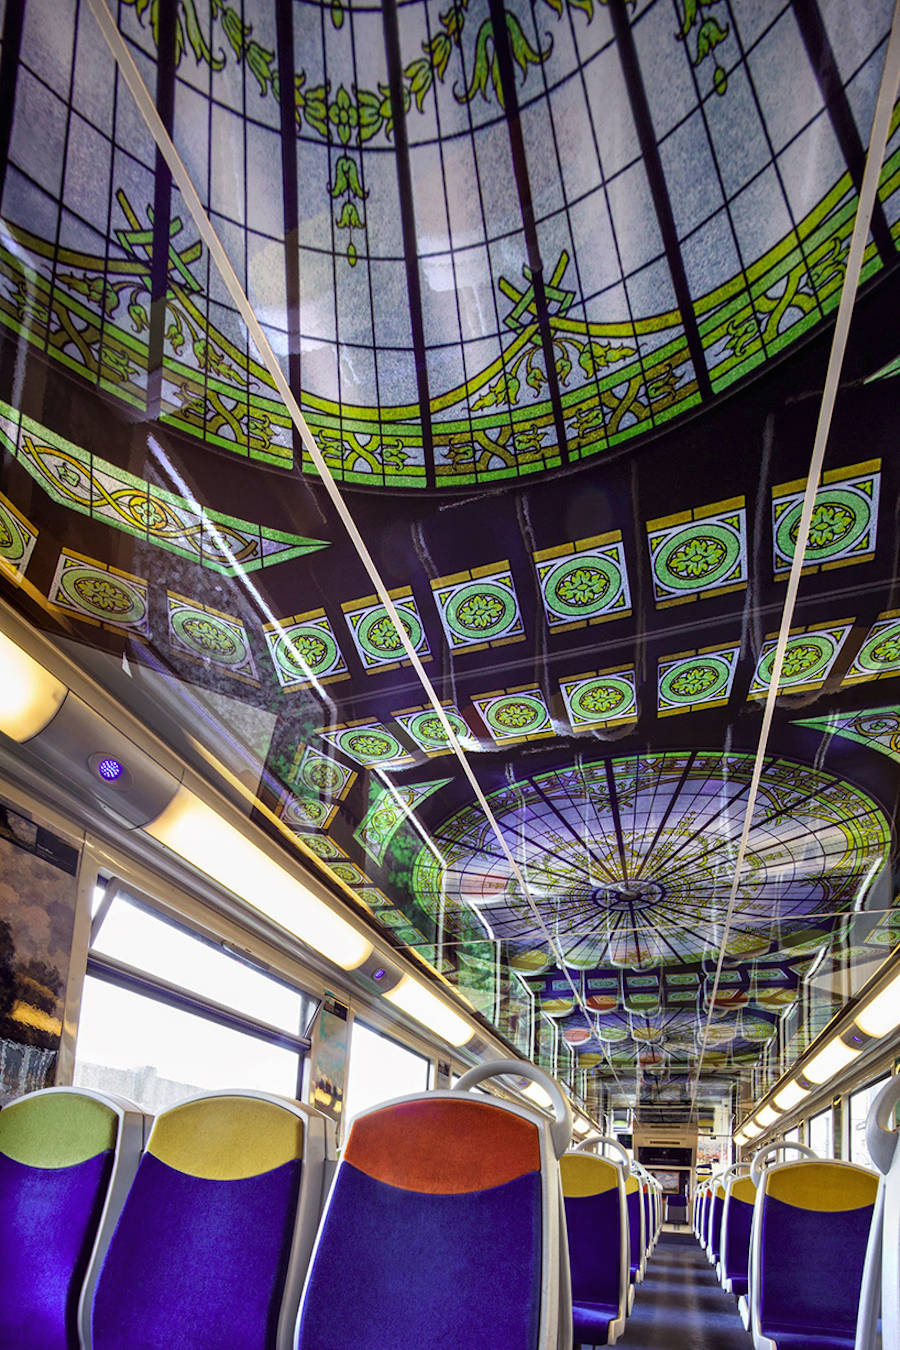 French Public Trains Redecorated with Impressionist Art